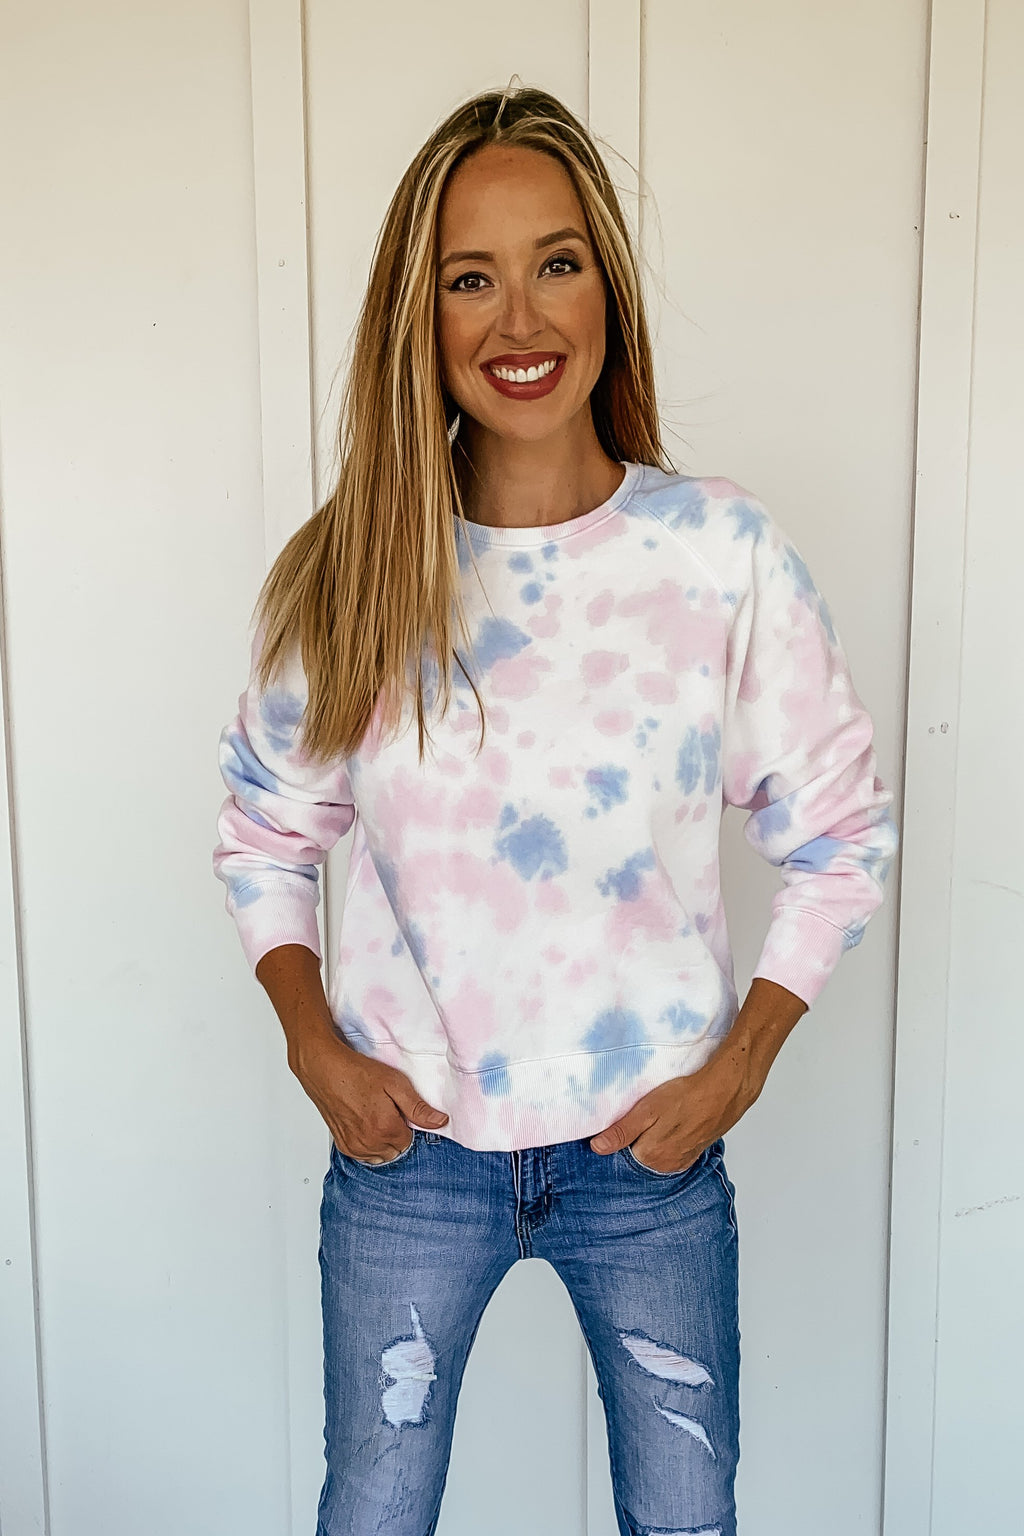 Cotton Candy Tie Dye Sweatshirt - LURE Boutique